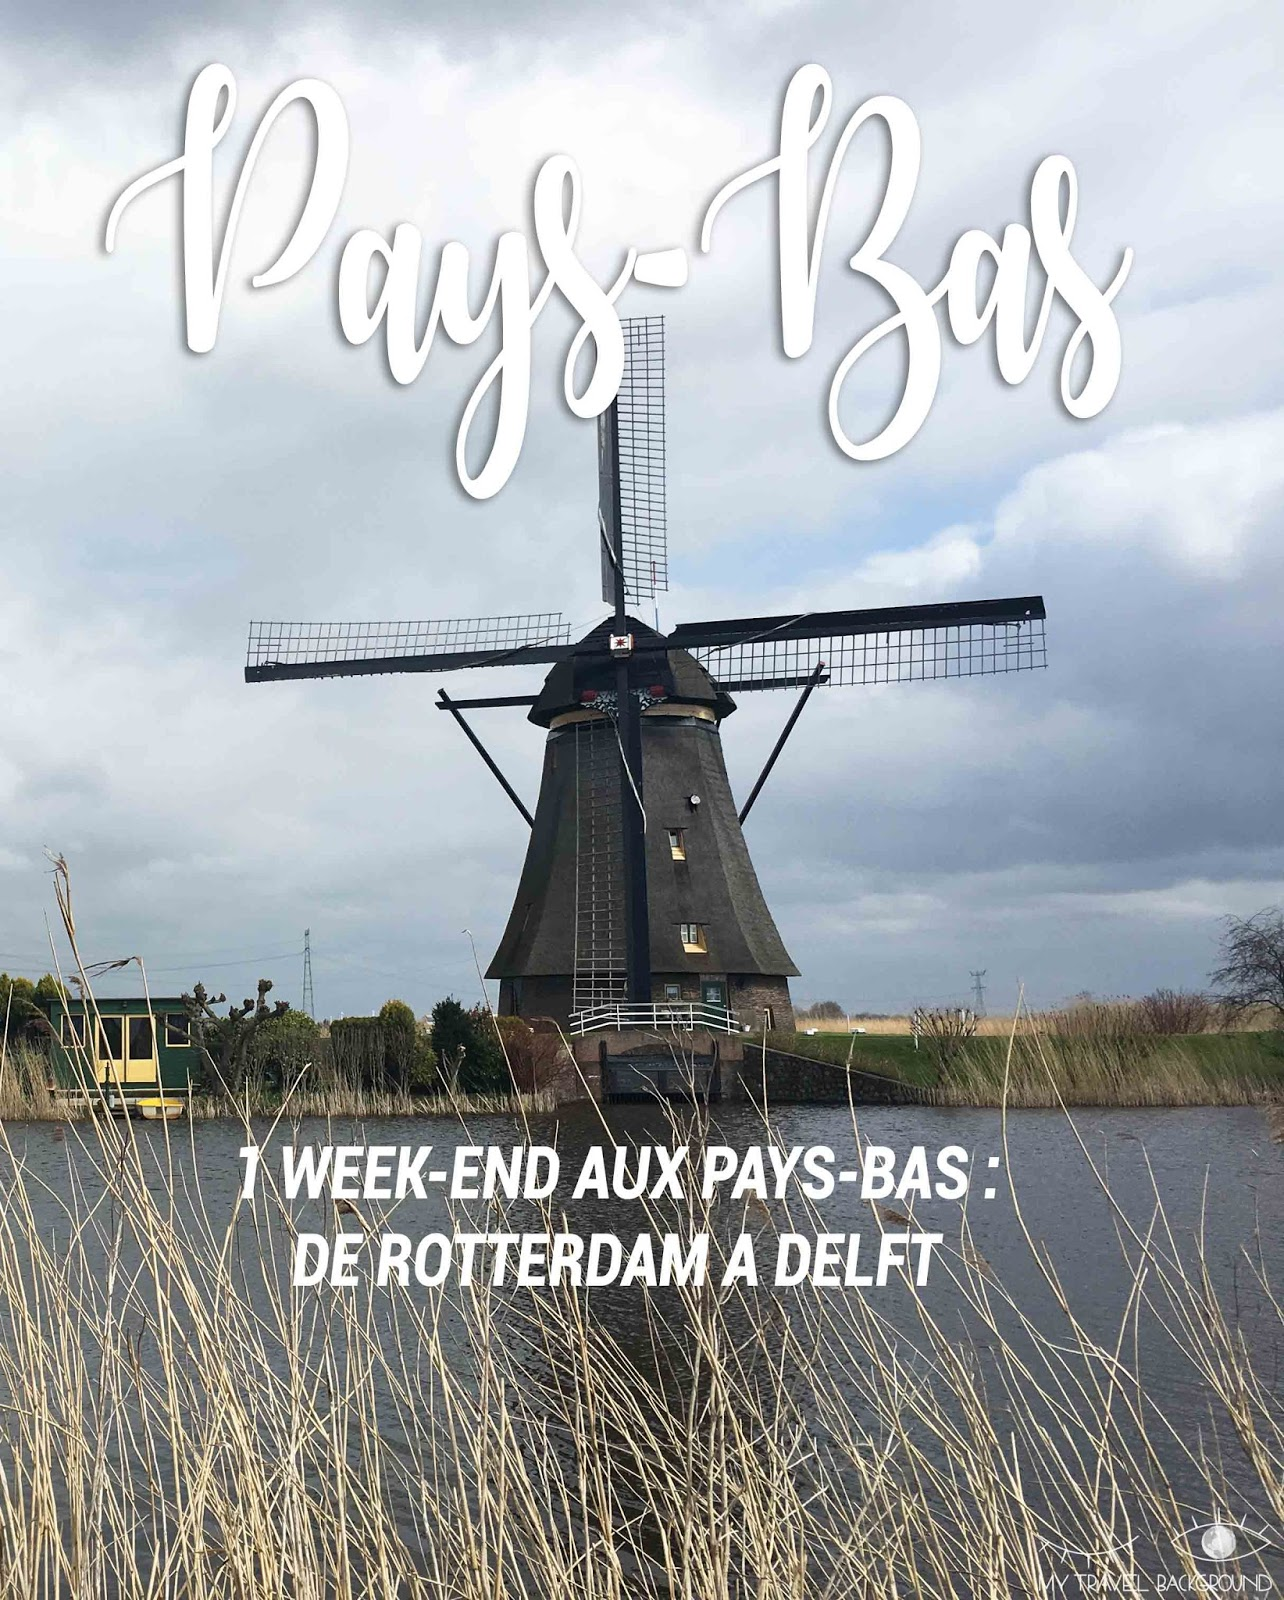 My Travel Background : 1 week-end aux Pays-Bas, de Rotterdam à Delft